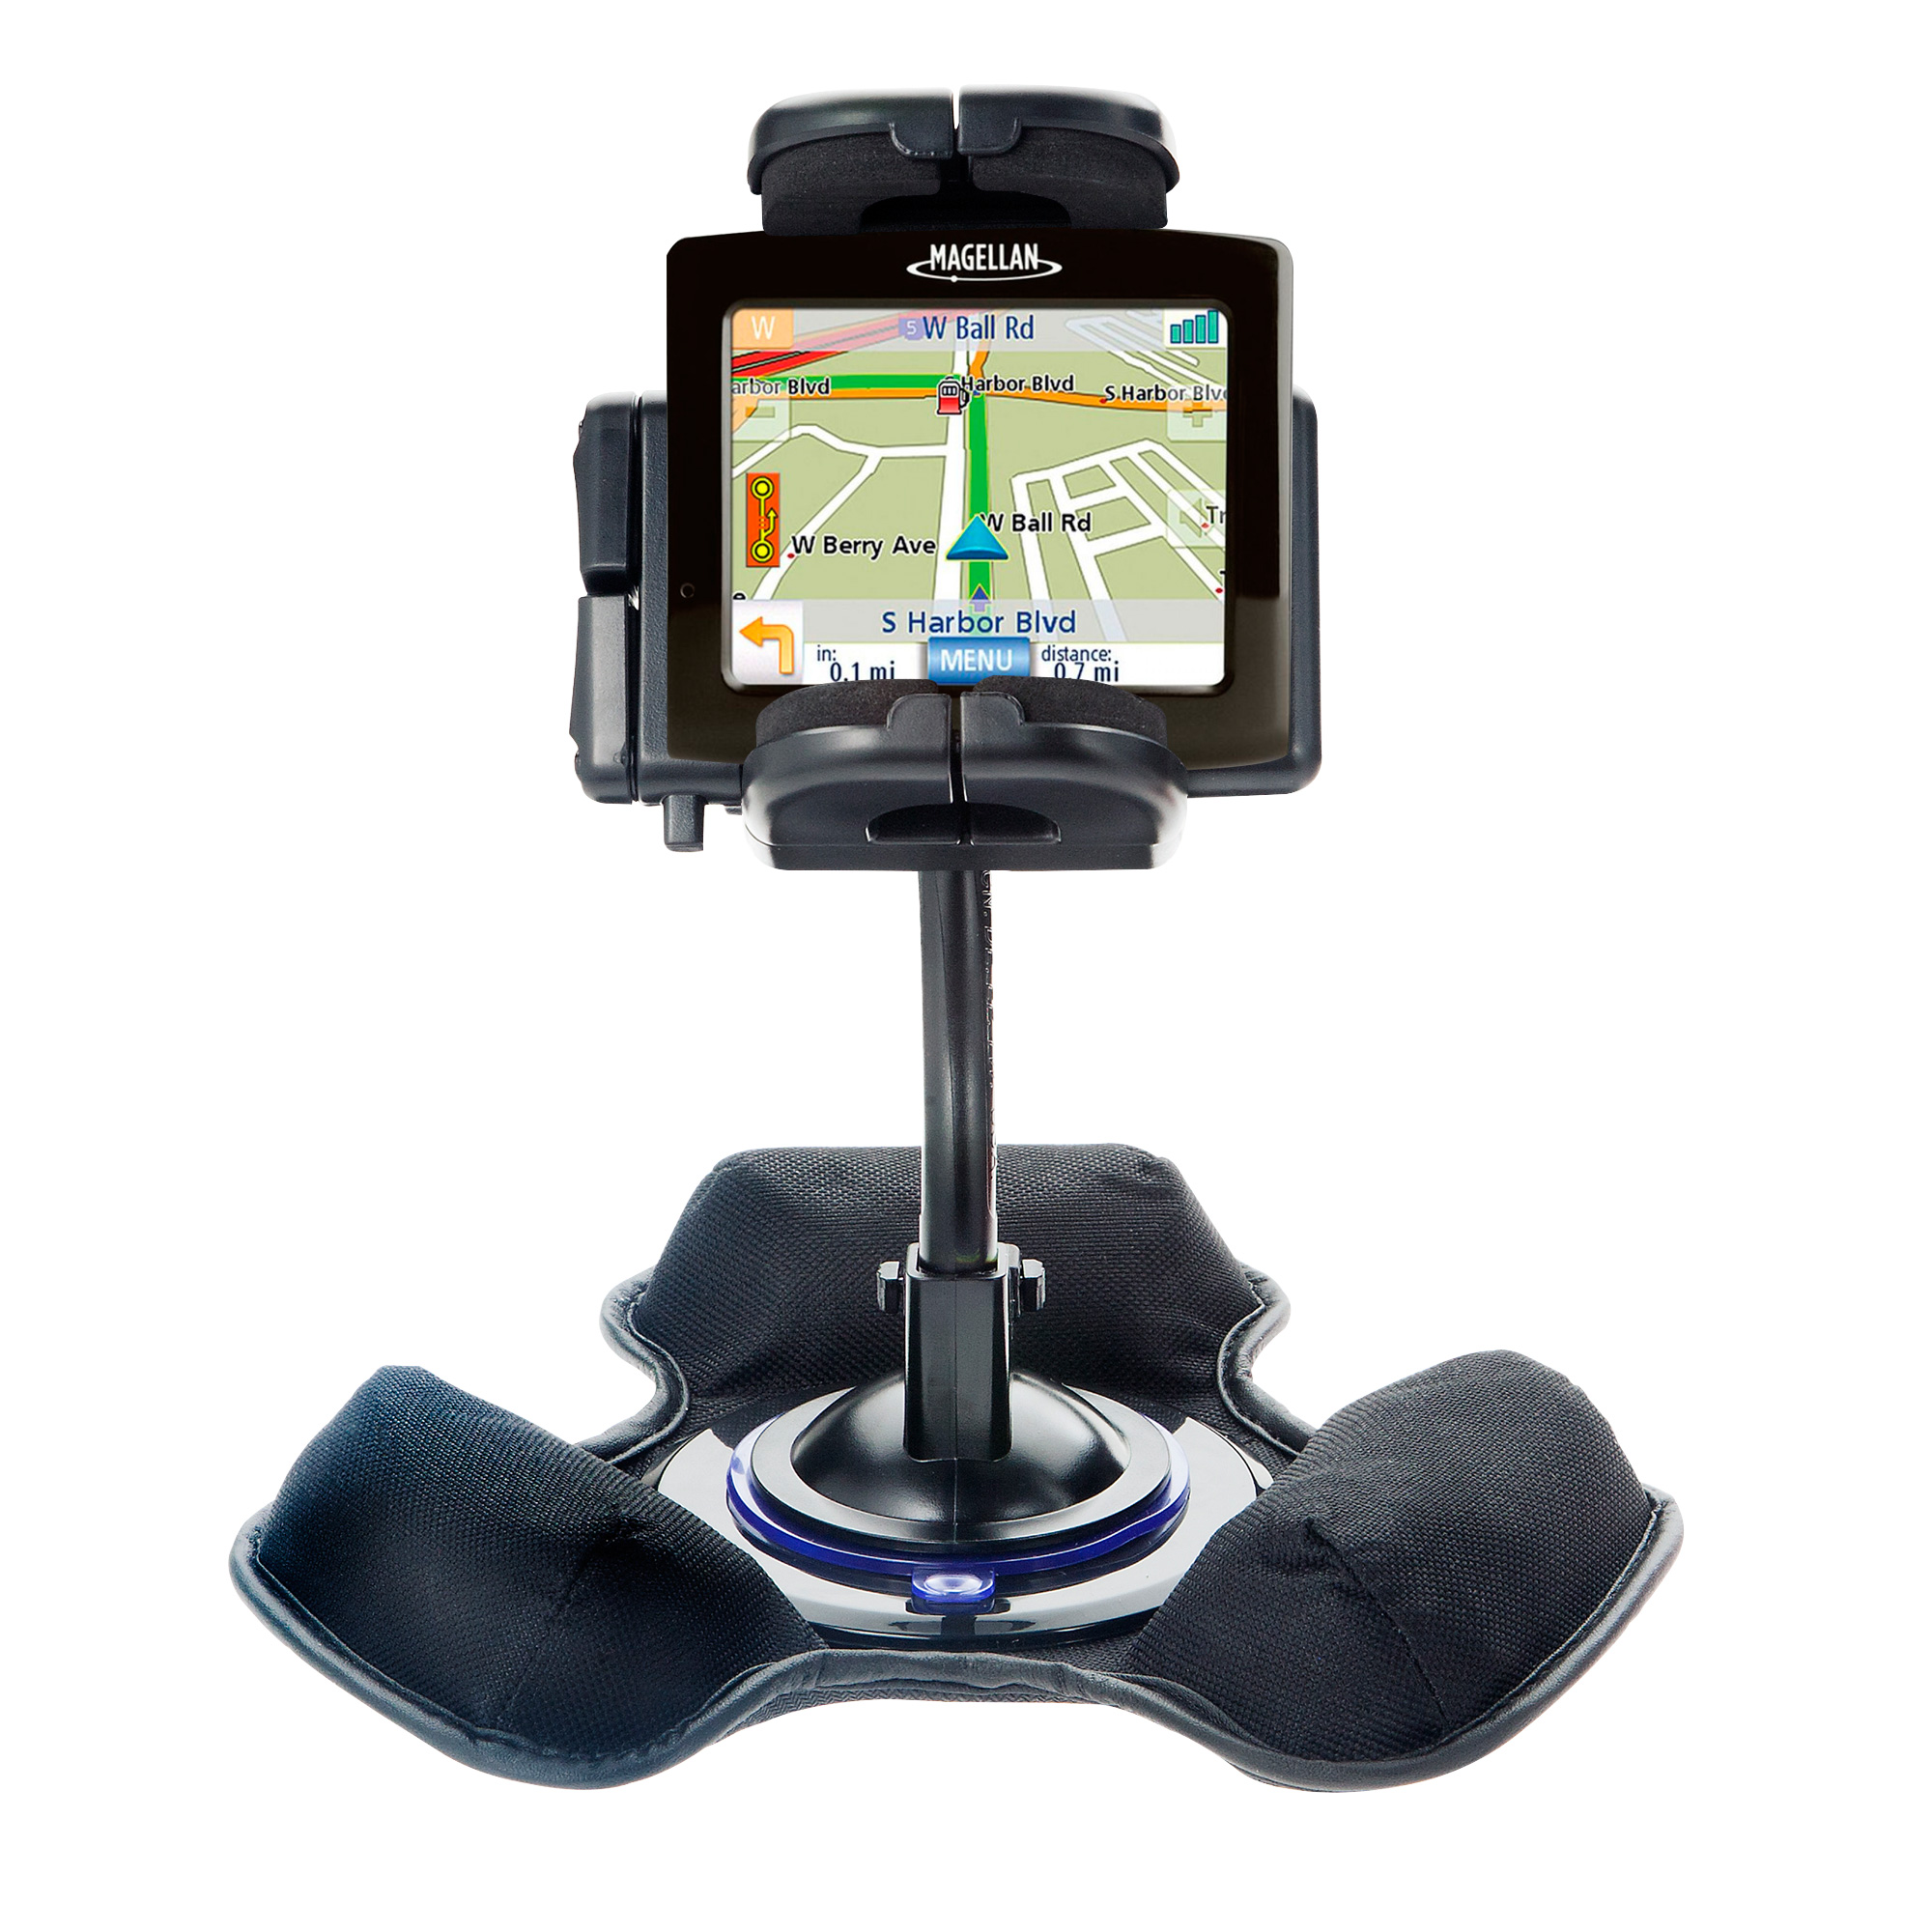 Dash and Windshield Holder compatible with the Magellan Maestro 3200